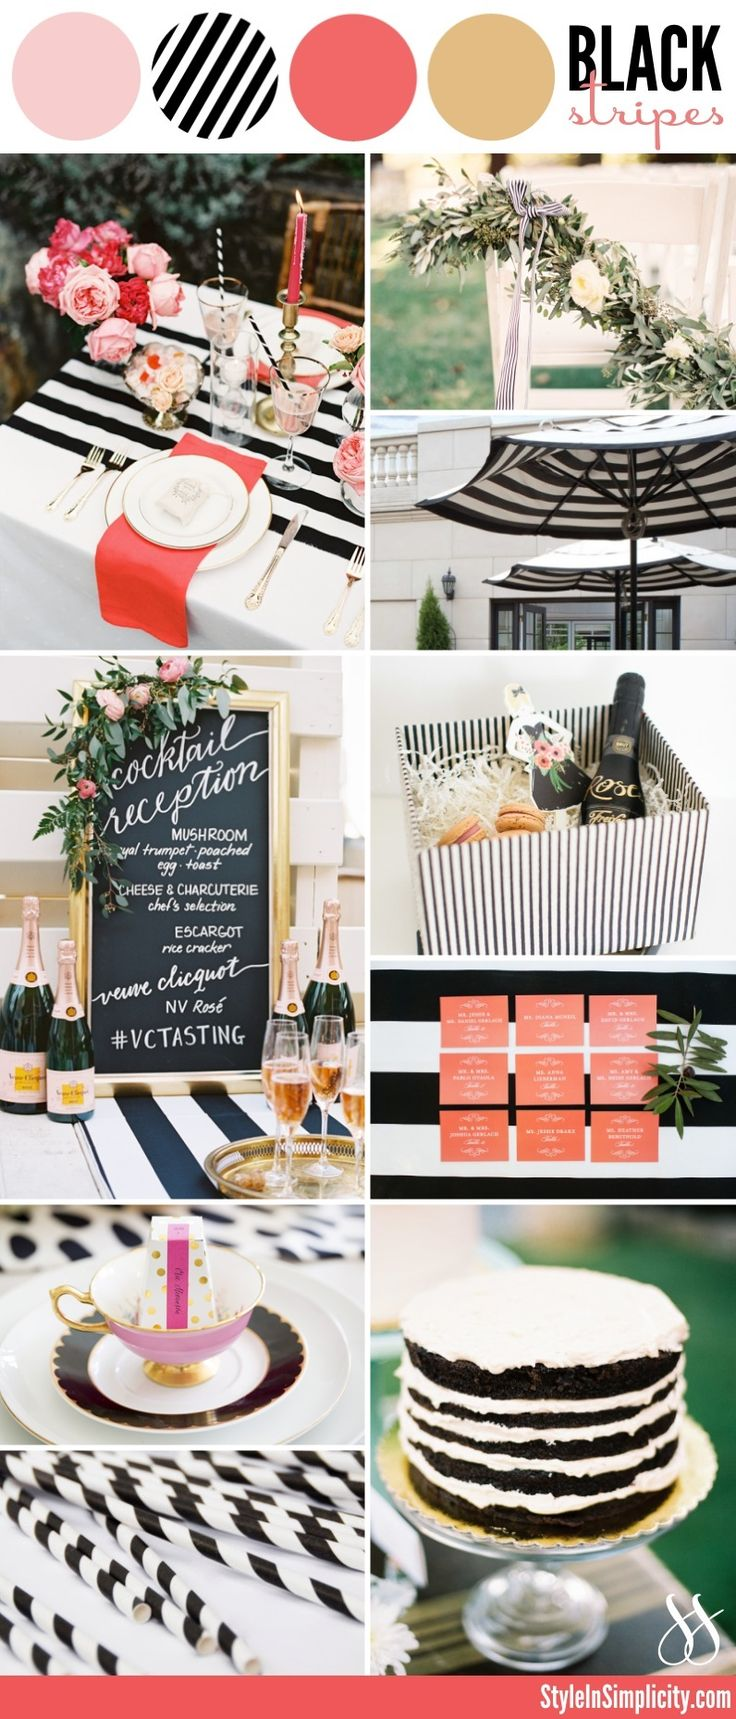 Modern Black &White Stripes - Wedding Color Palette Inspiration via StyleInSimplicity.com